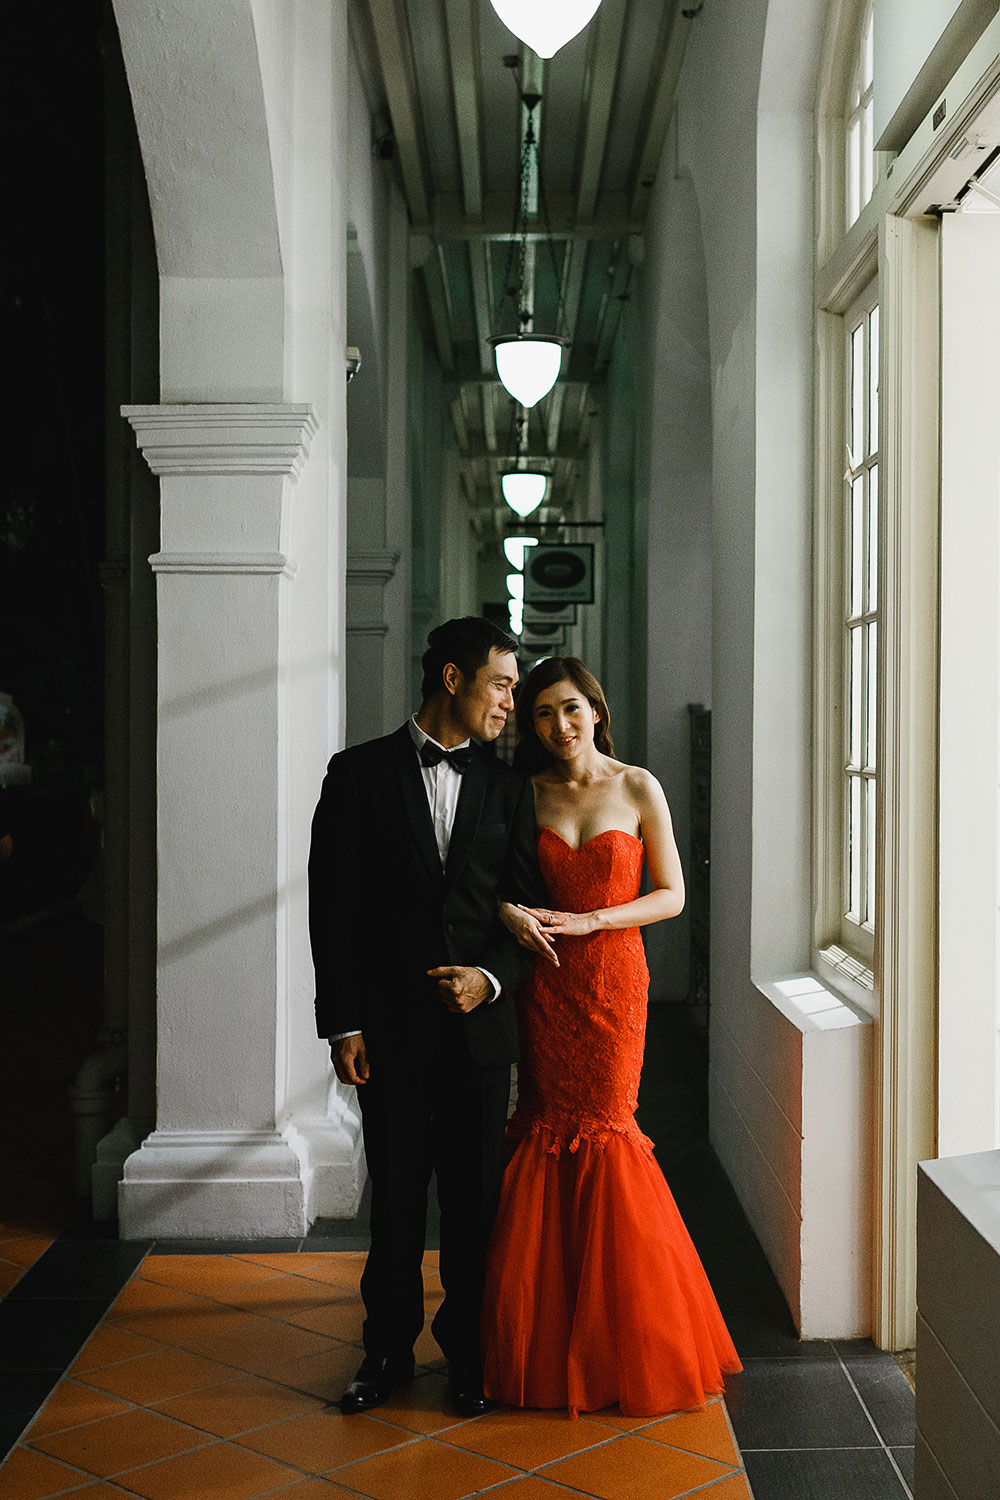 Singaore-Raffles-Hotel-Wedding-evening-portrait